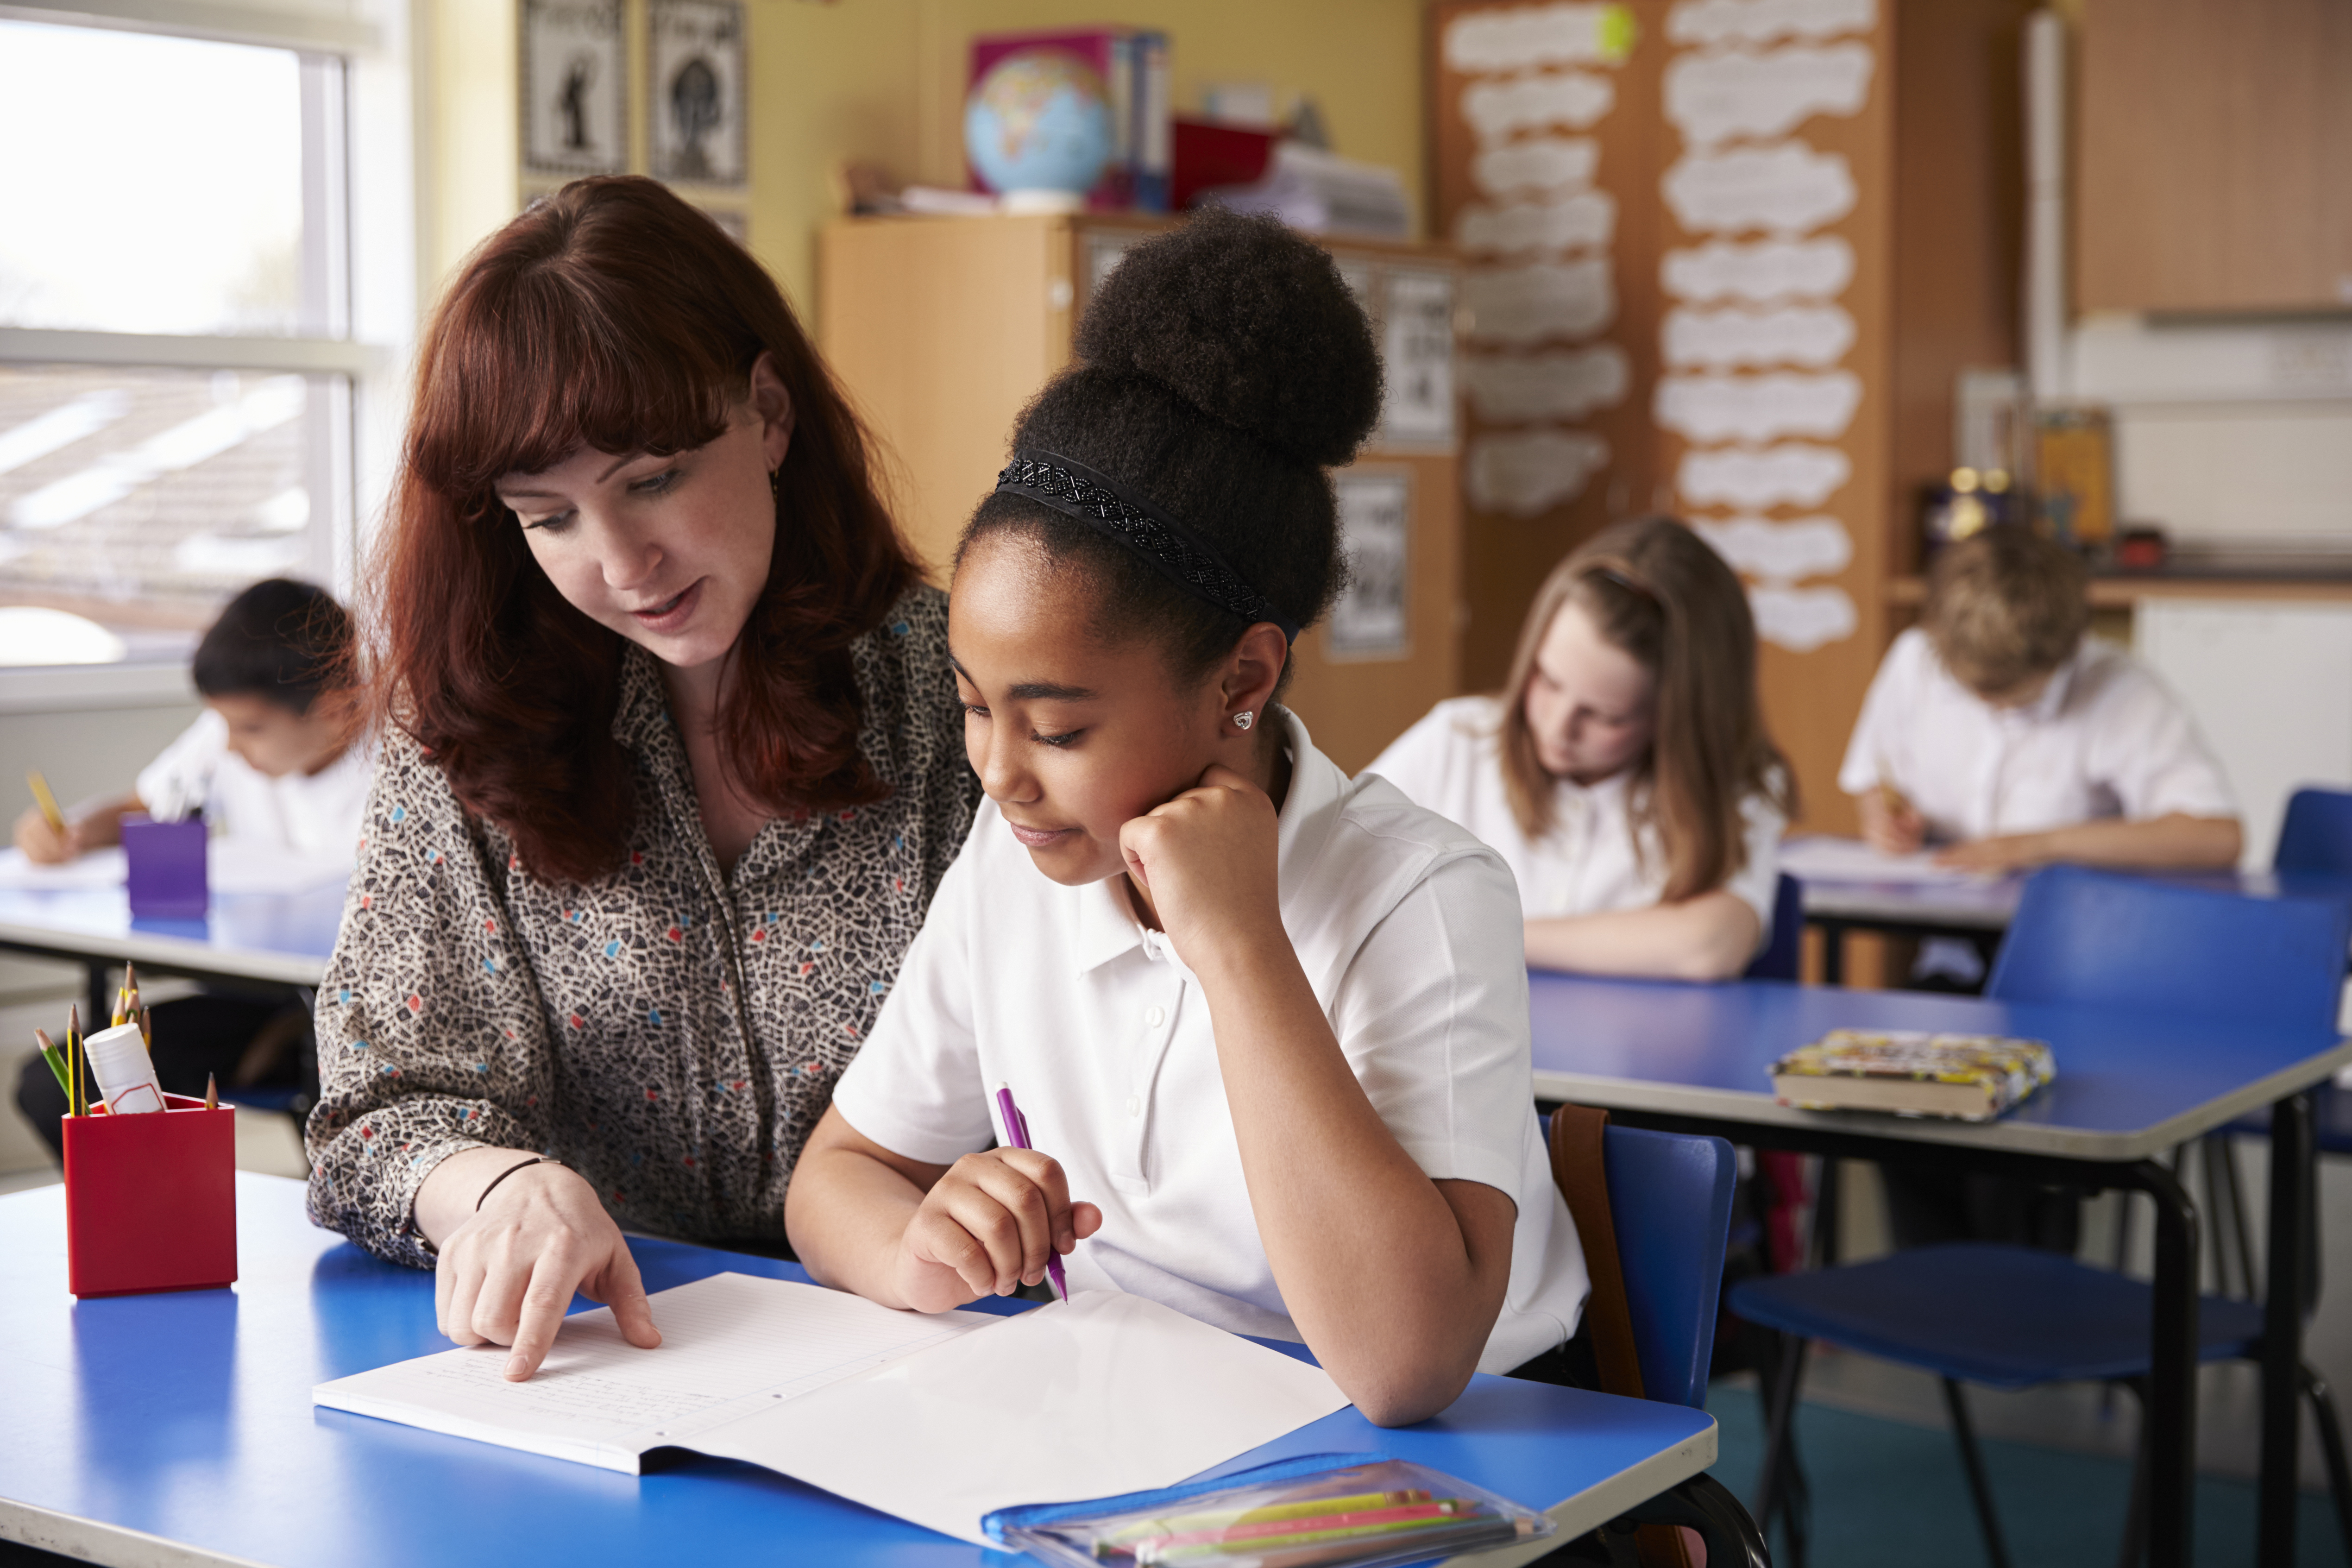 Teacher working closely with student